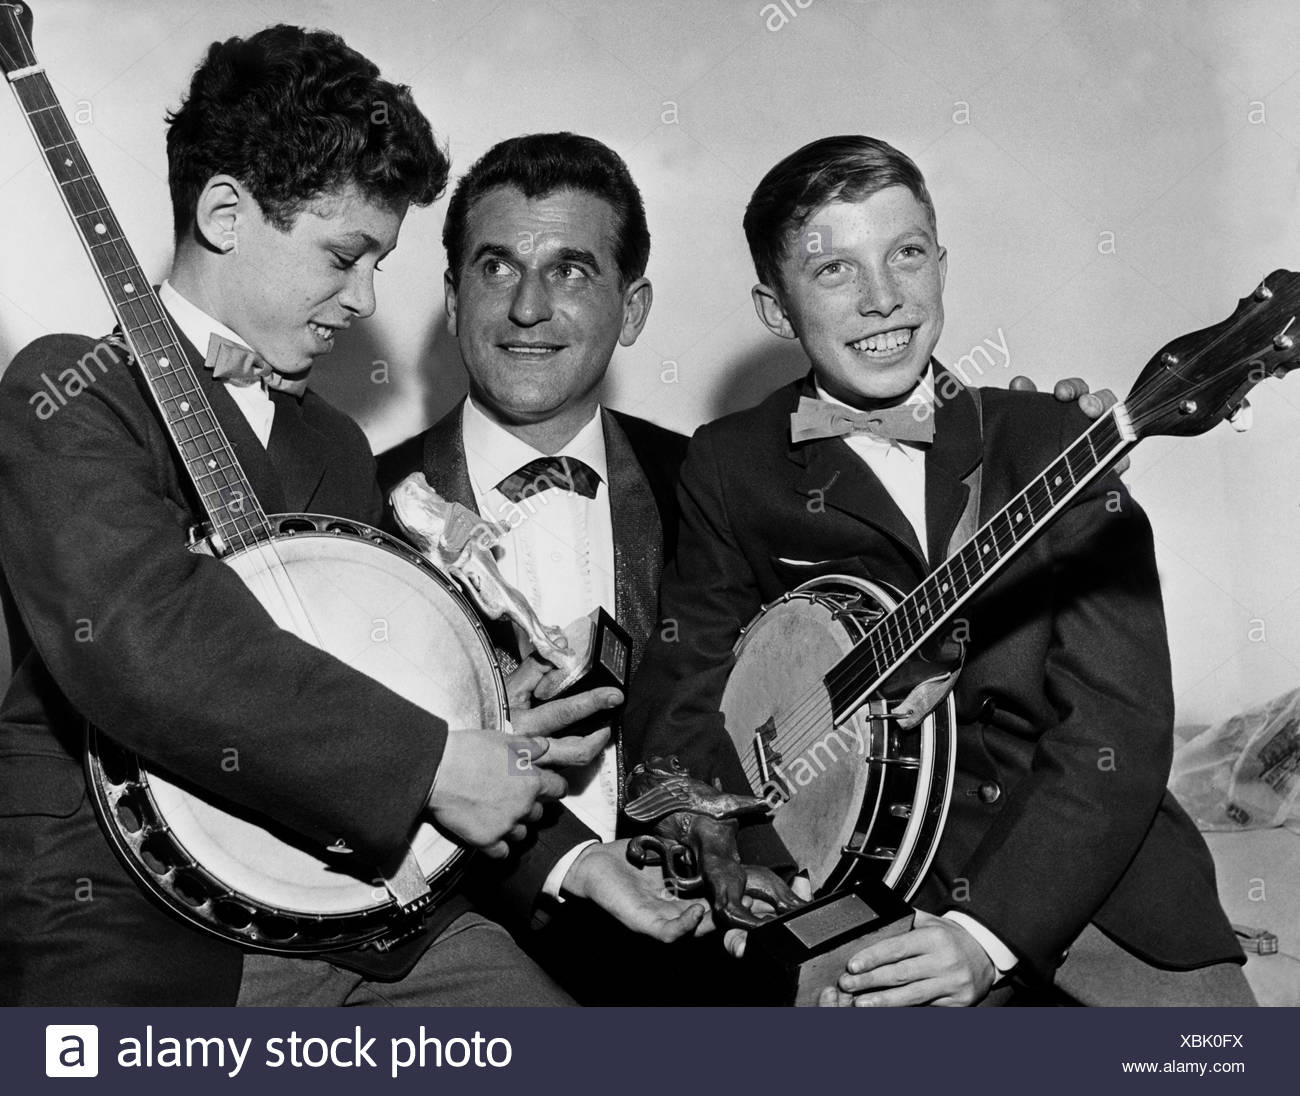 Jan und Kjeld, Danish duo (Banjo Boys), founded 1958, members: Wennick, Kjeld (* 3.2.1944) and Wennick, Jan (* 27.7.1946), with Rene Carol, award shows, Radio Luxemburg, 1960, Additional-Rights-Clearances-NA Stock Photo